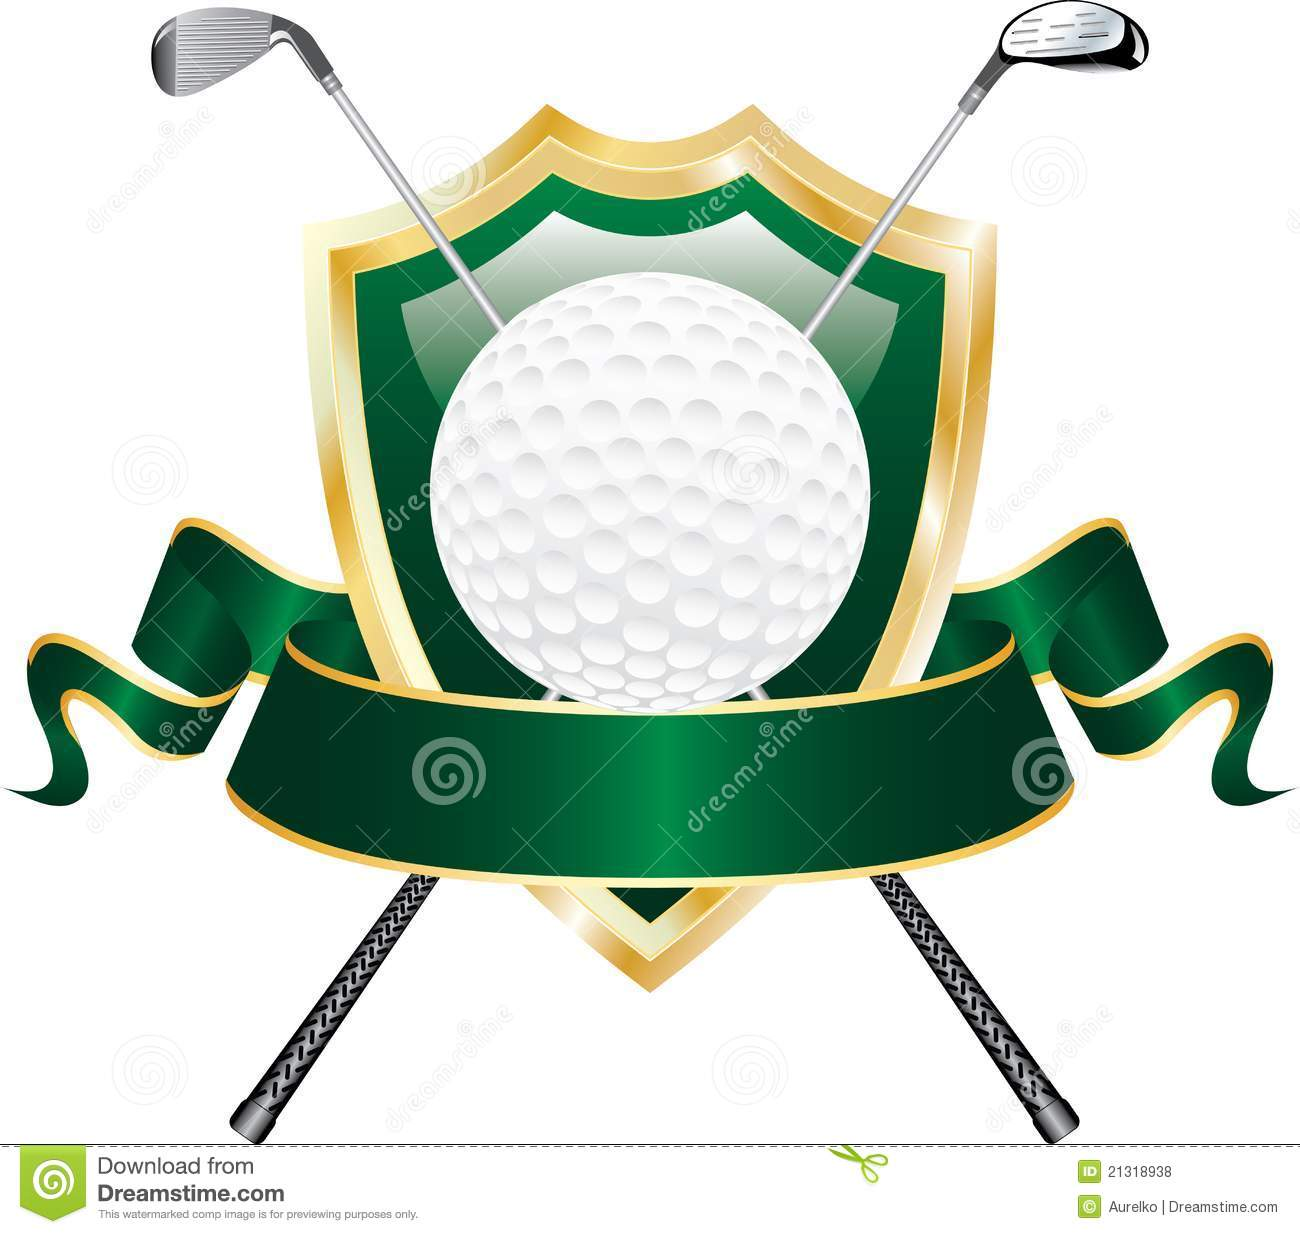 free golf clipart pictures - photo #19